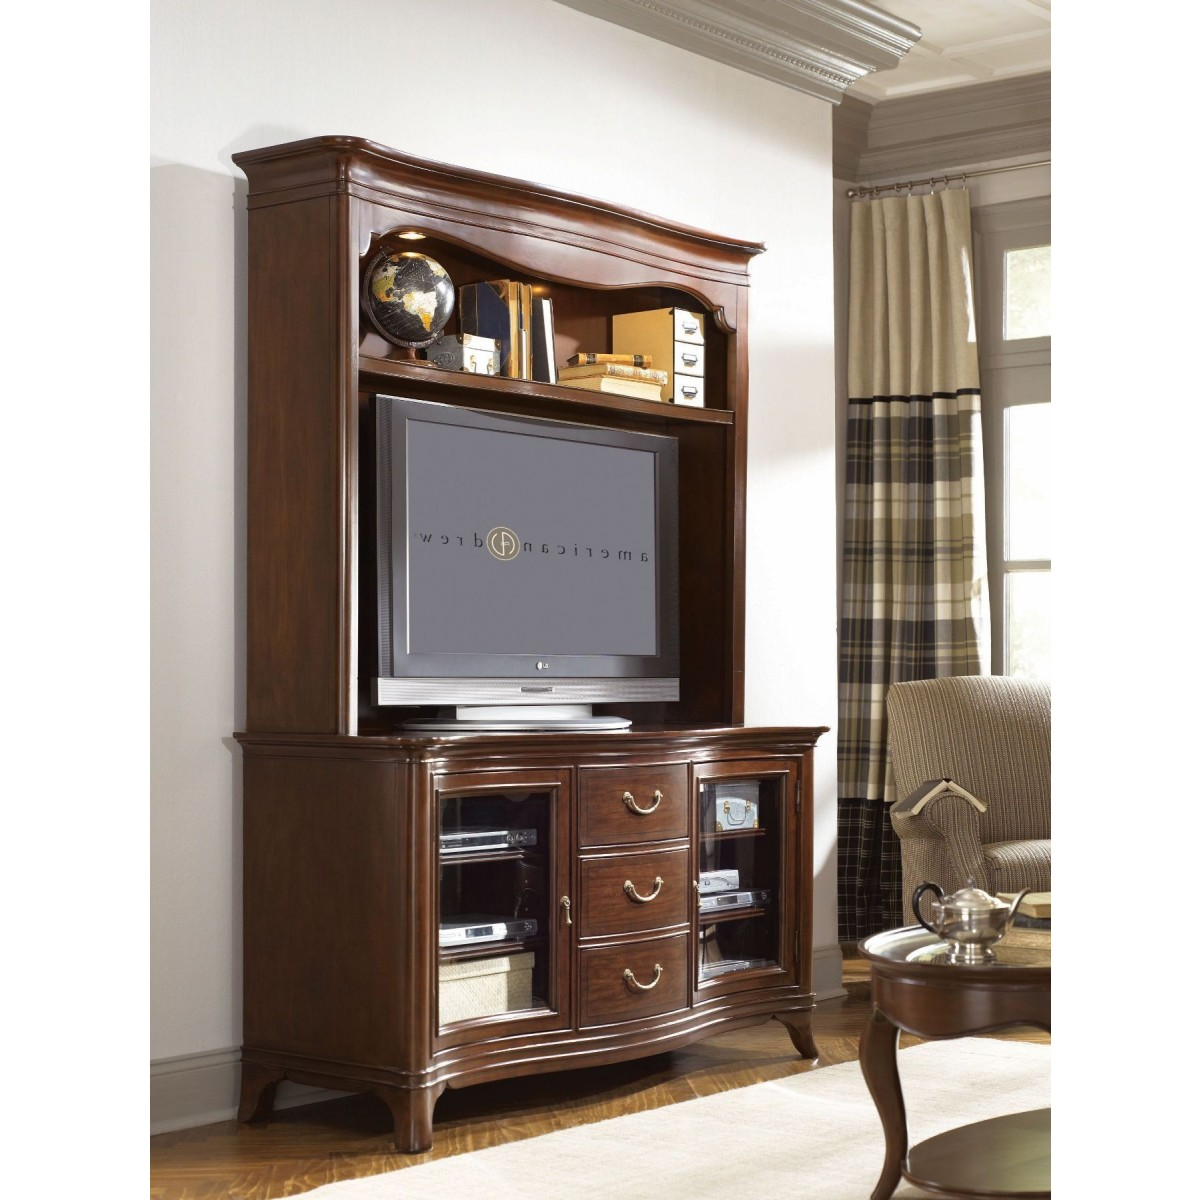 Beautiful Dark Brown Wooden Tv Armoire With Storage By Hammary Furniture On  Wooden Floor For Living Room With Living Room Tv Furniture Ideas